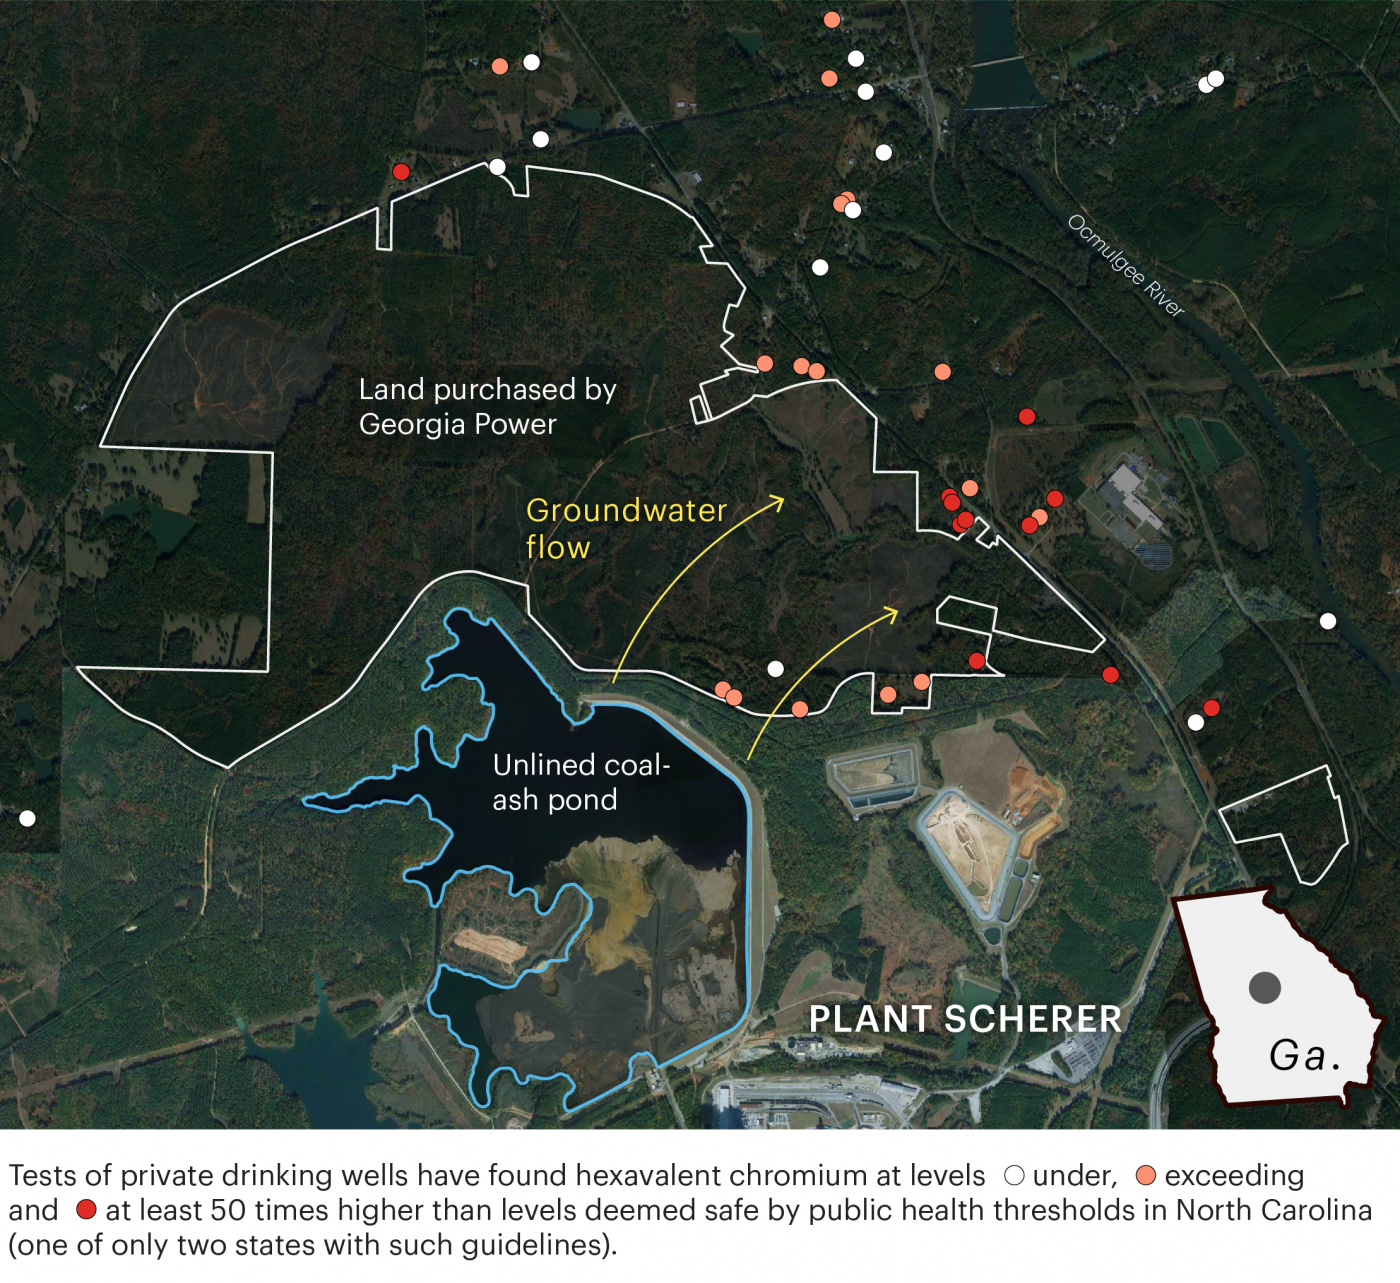 Chart showing groundwater flow from coal-ash pond